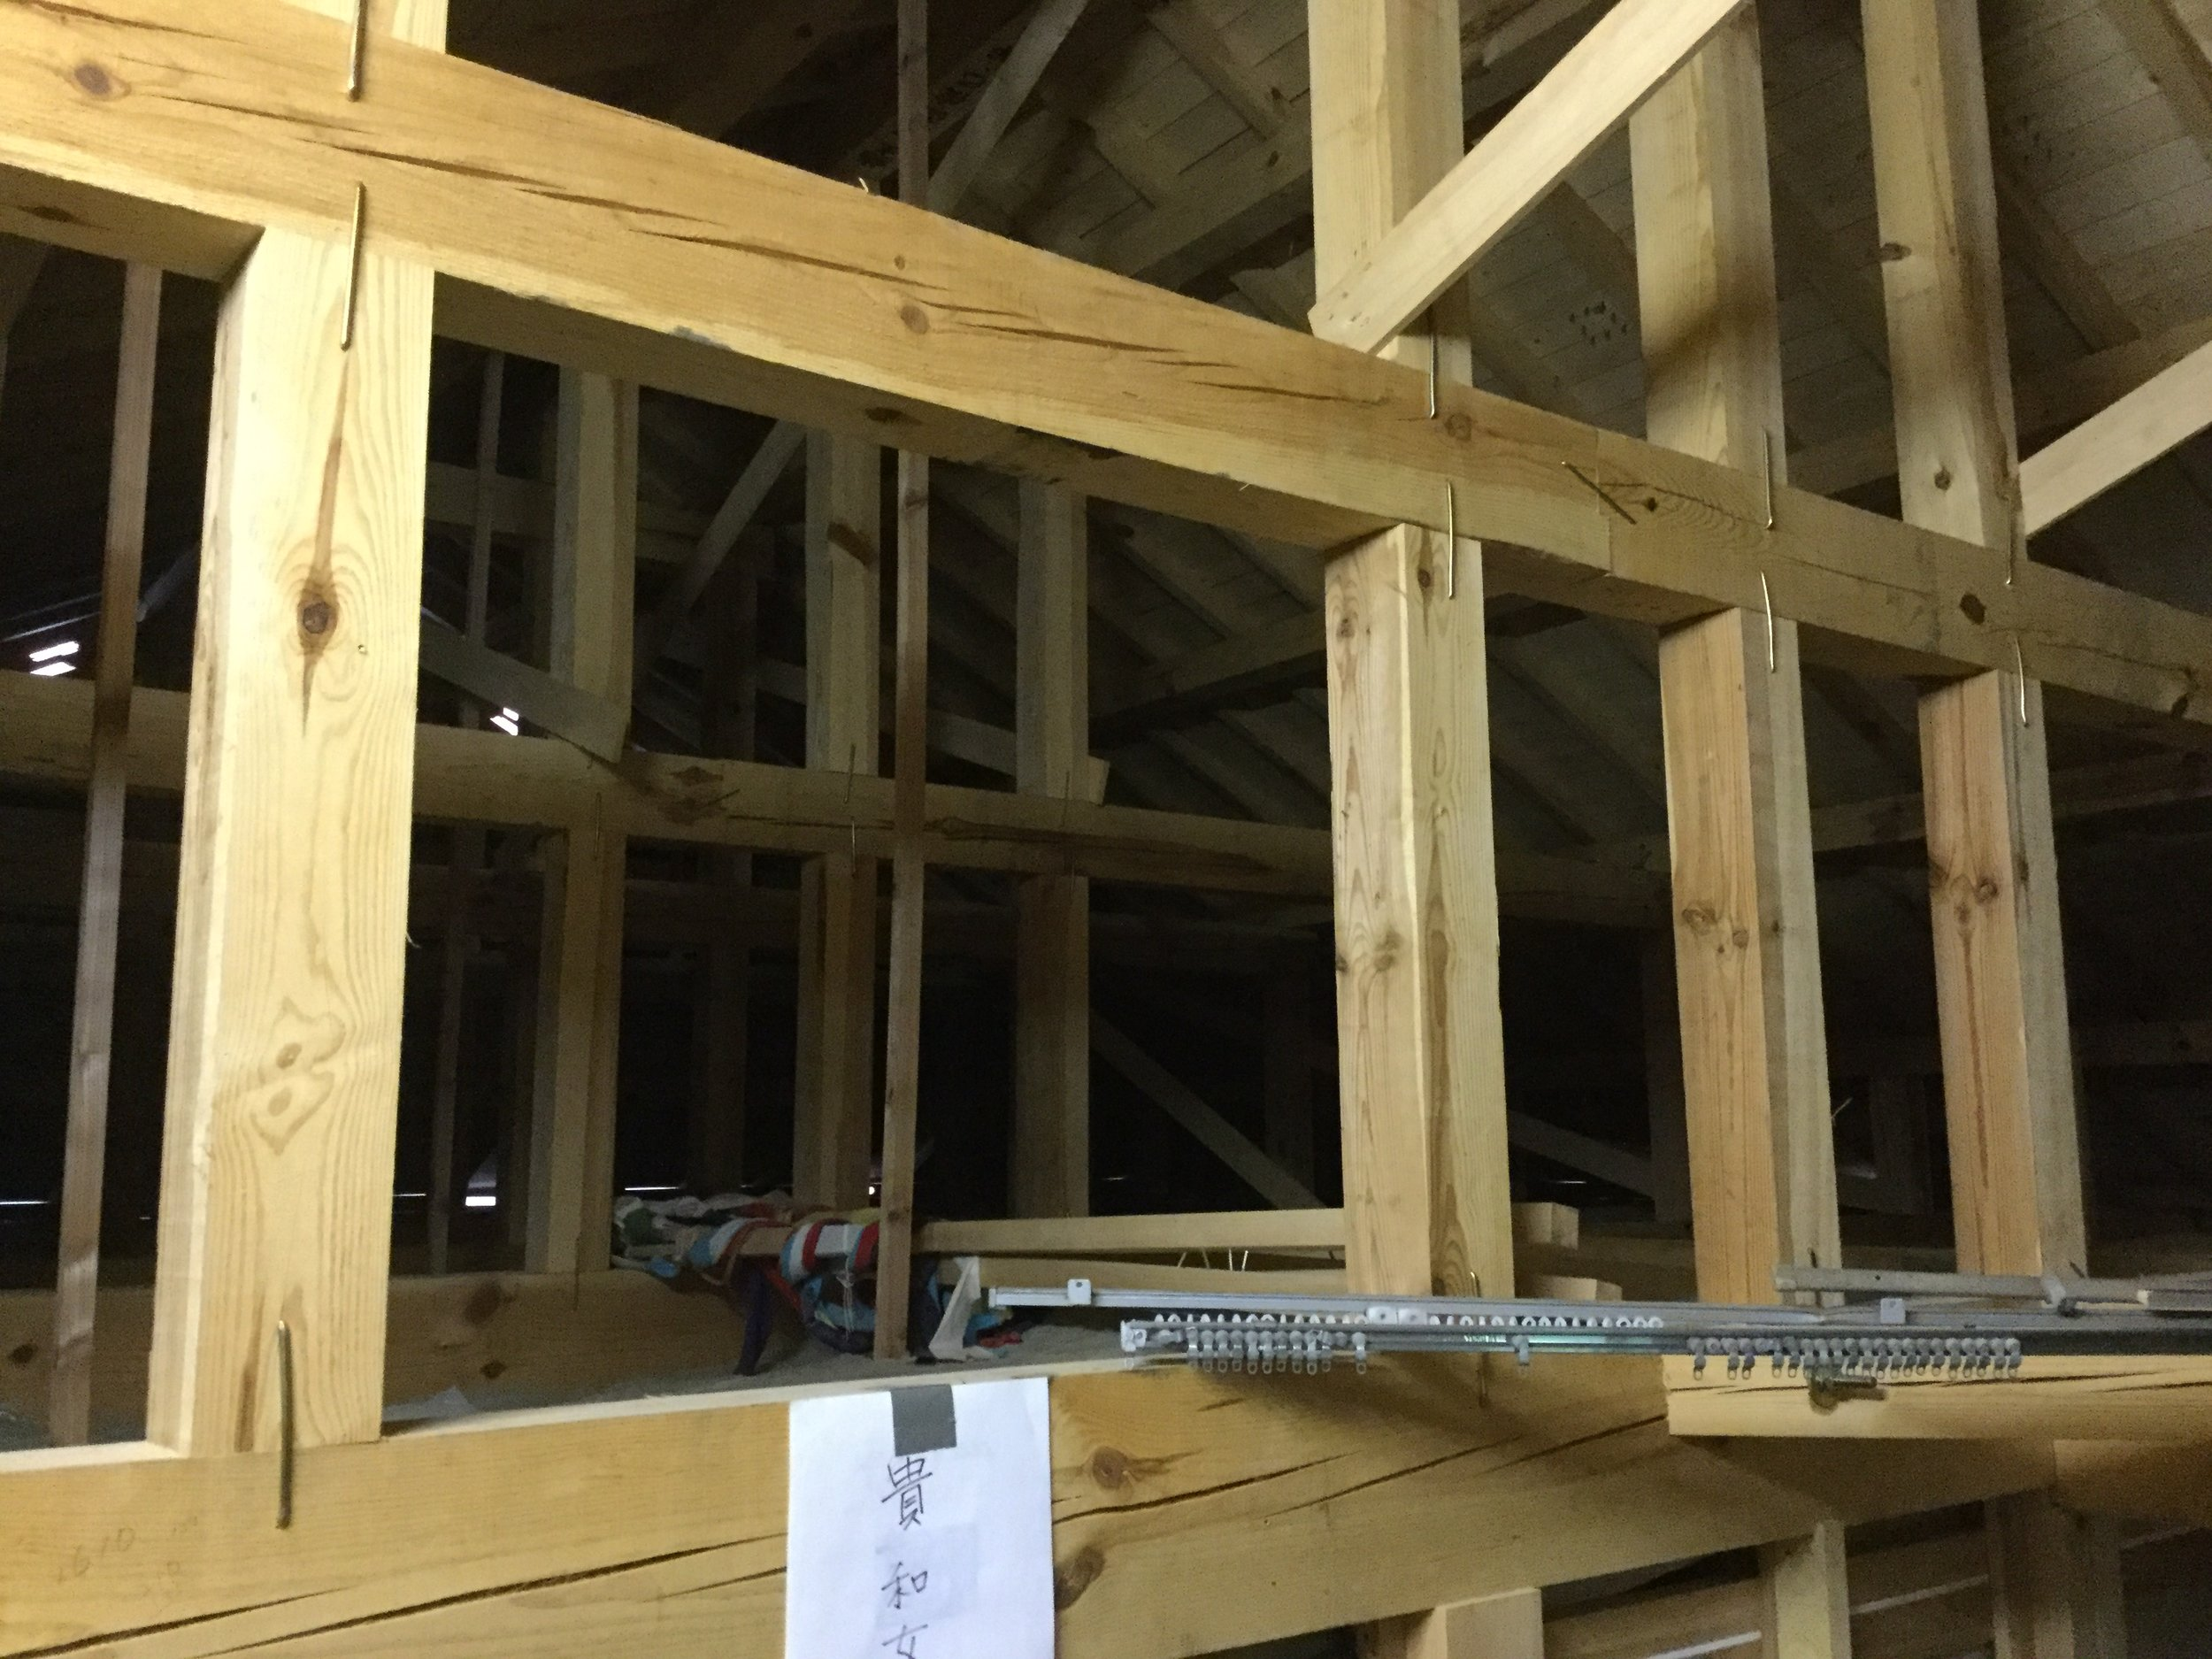 Our attic - check the cool 'staples' providing lateral stability for the roof structure